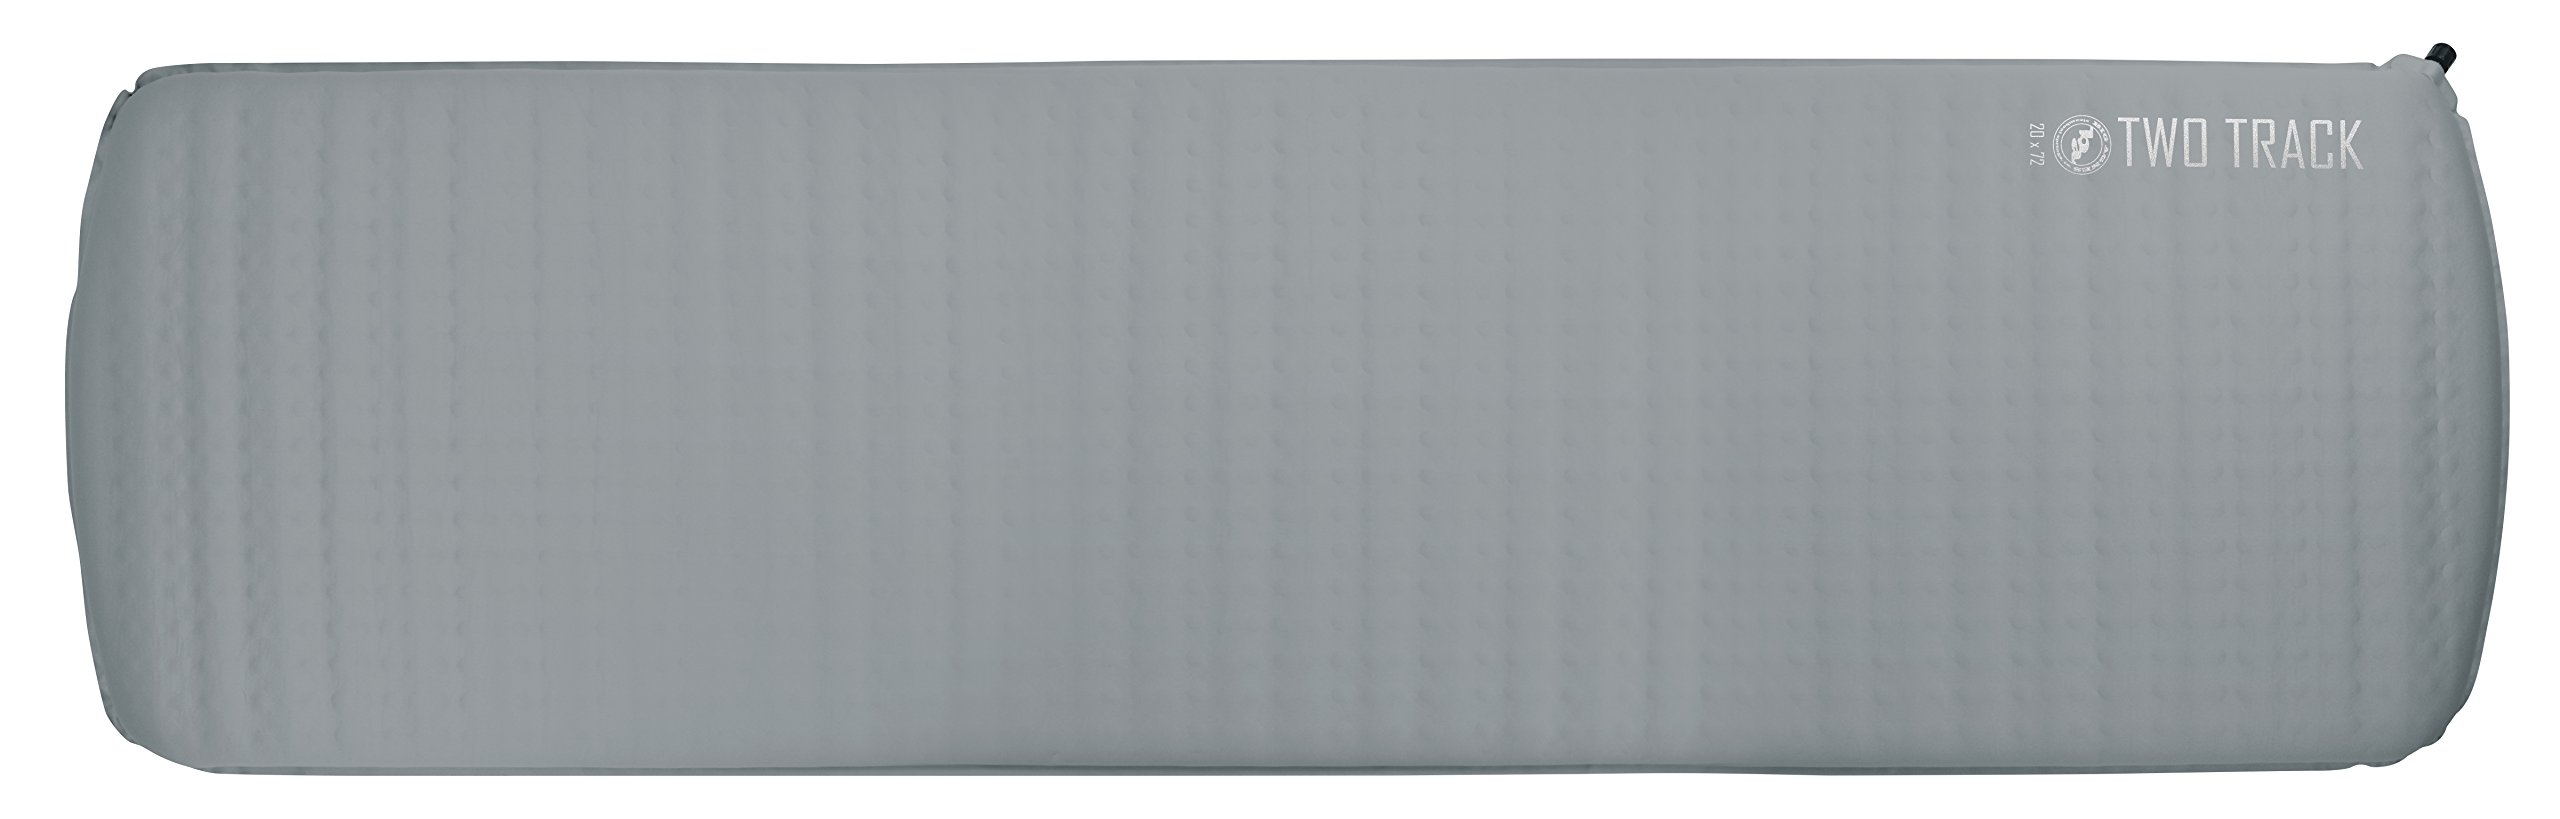 Big Agnes Two Track Sleeping Pad - Green Blue 25x78 Wide Long by Big Agnes